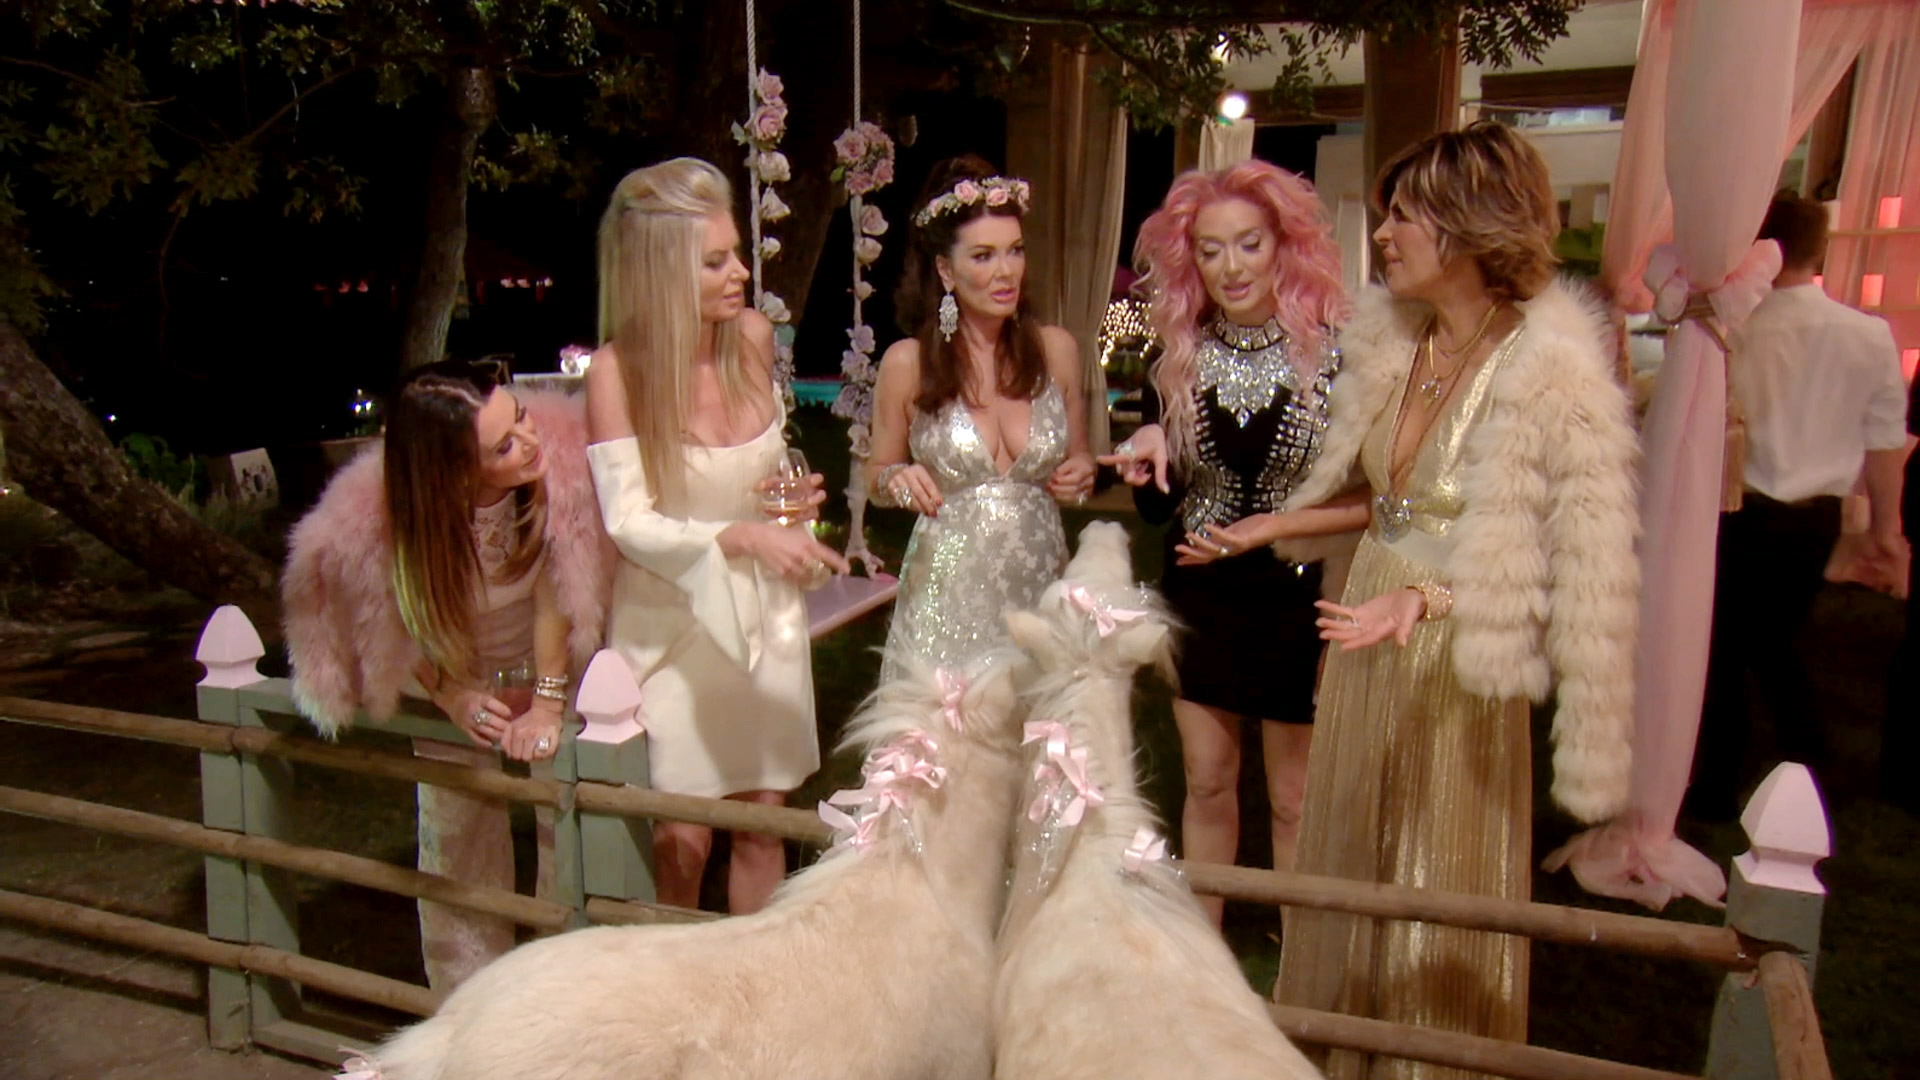 Next on RHOBH: The Finale